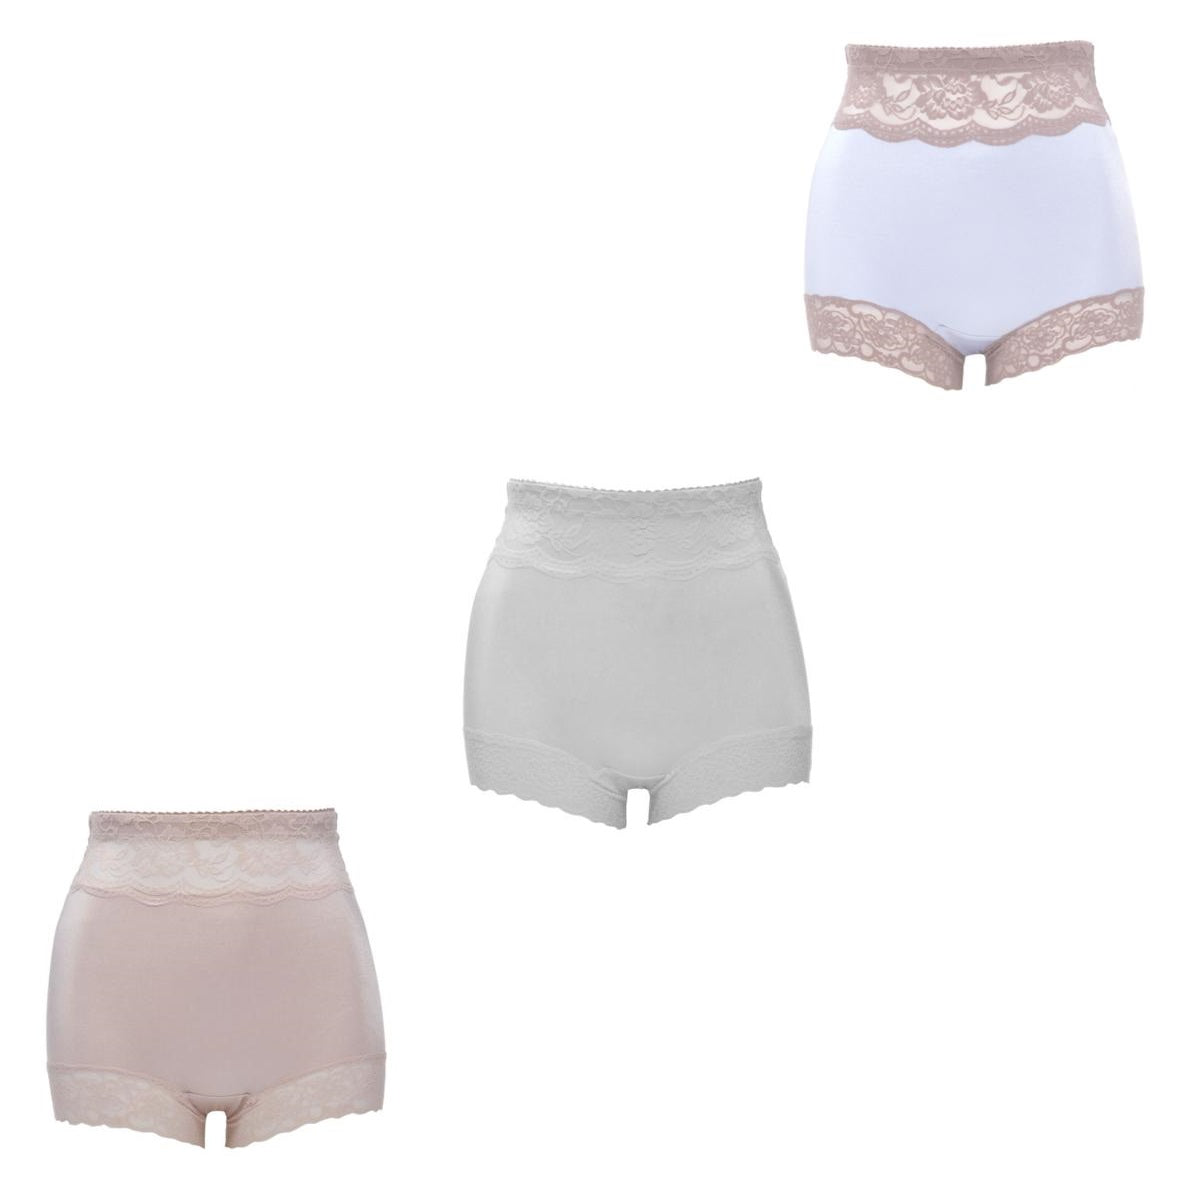 Rhonda Shear 3-Pack Pin Up Boy Short Panty Set Pastels 622401